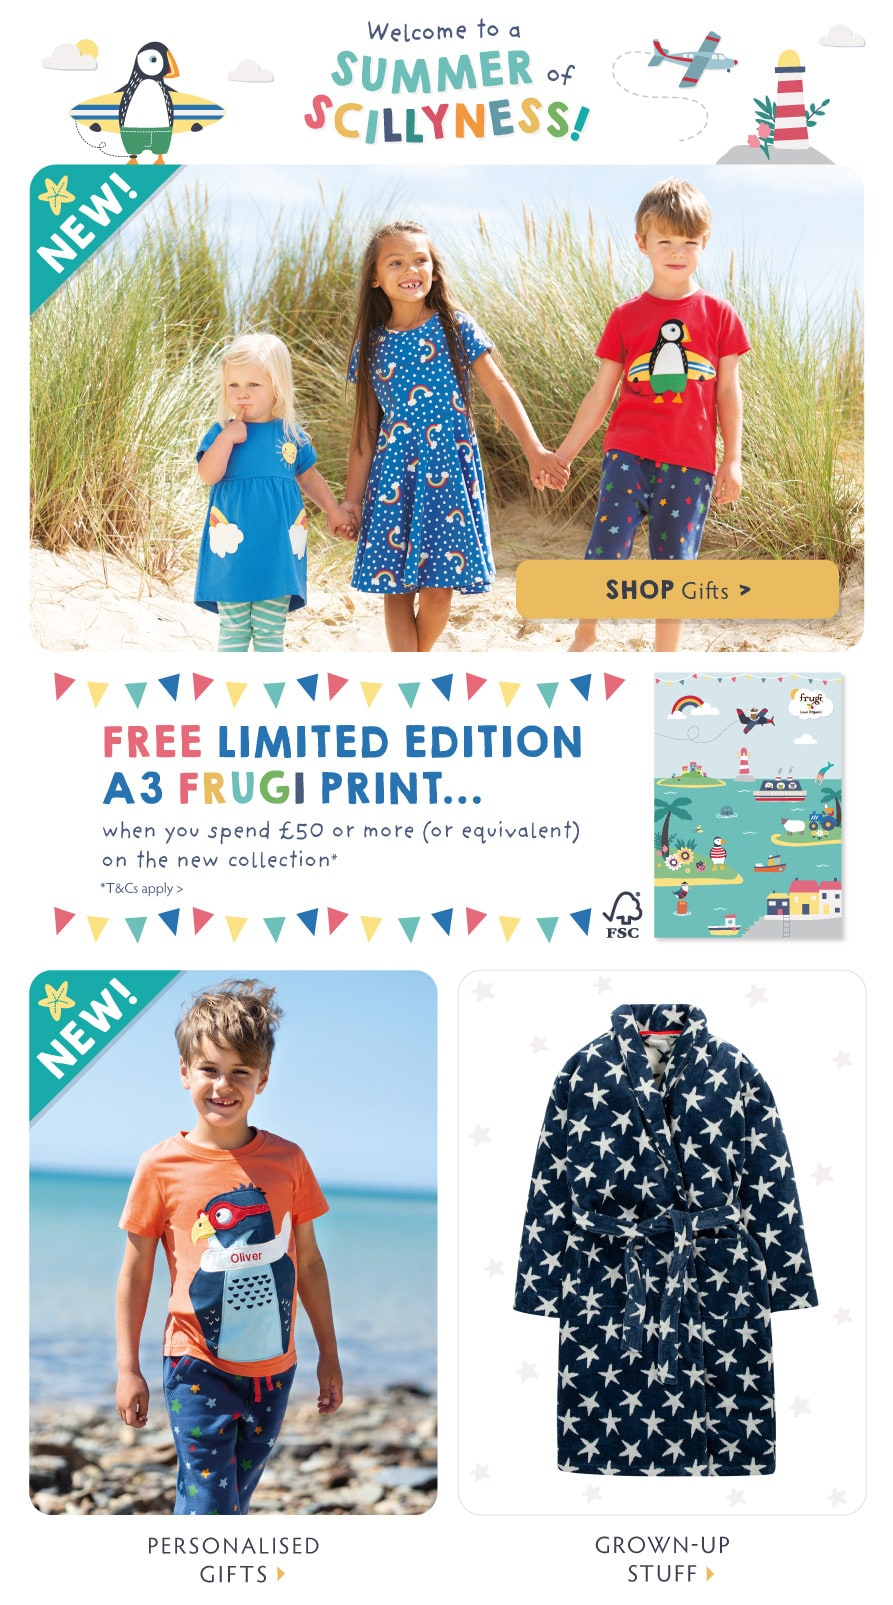 Welcome to a Summer of Scillyness! Shop Home & Gifts